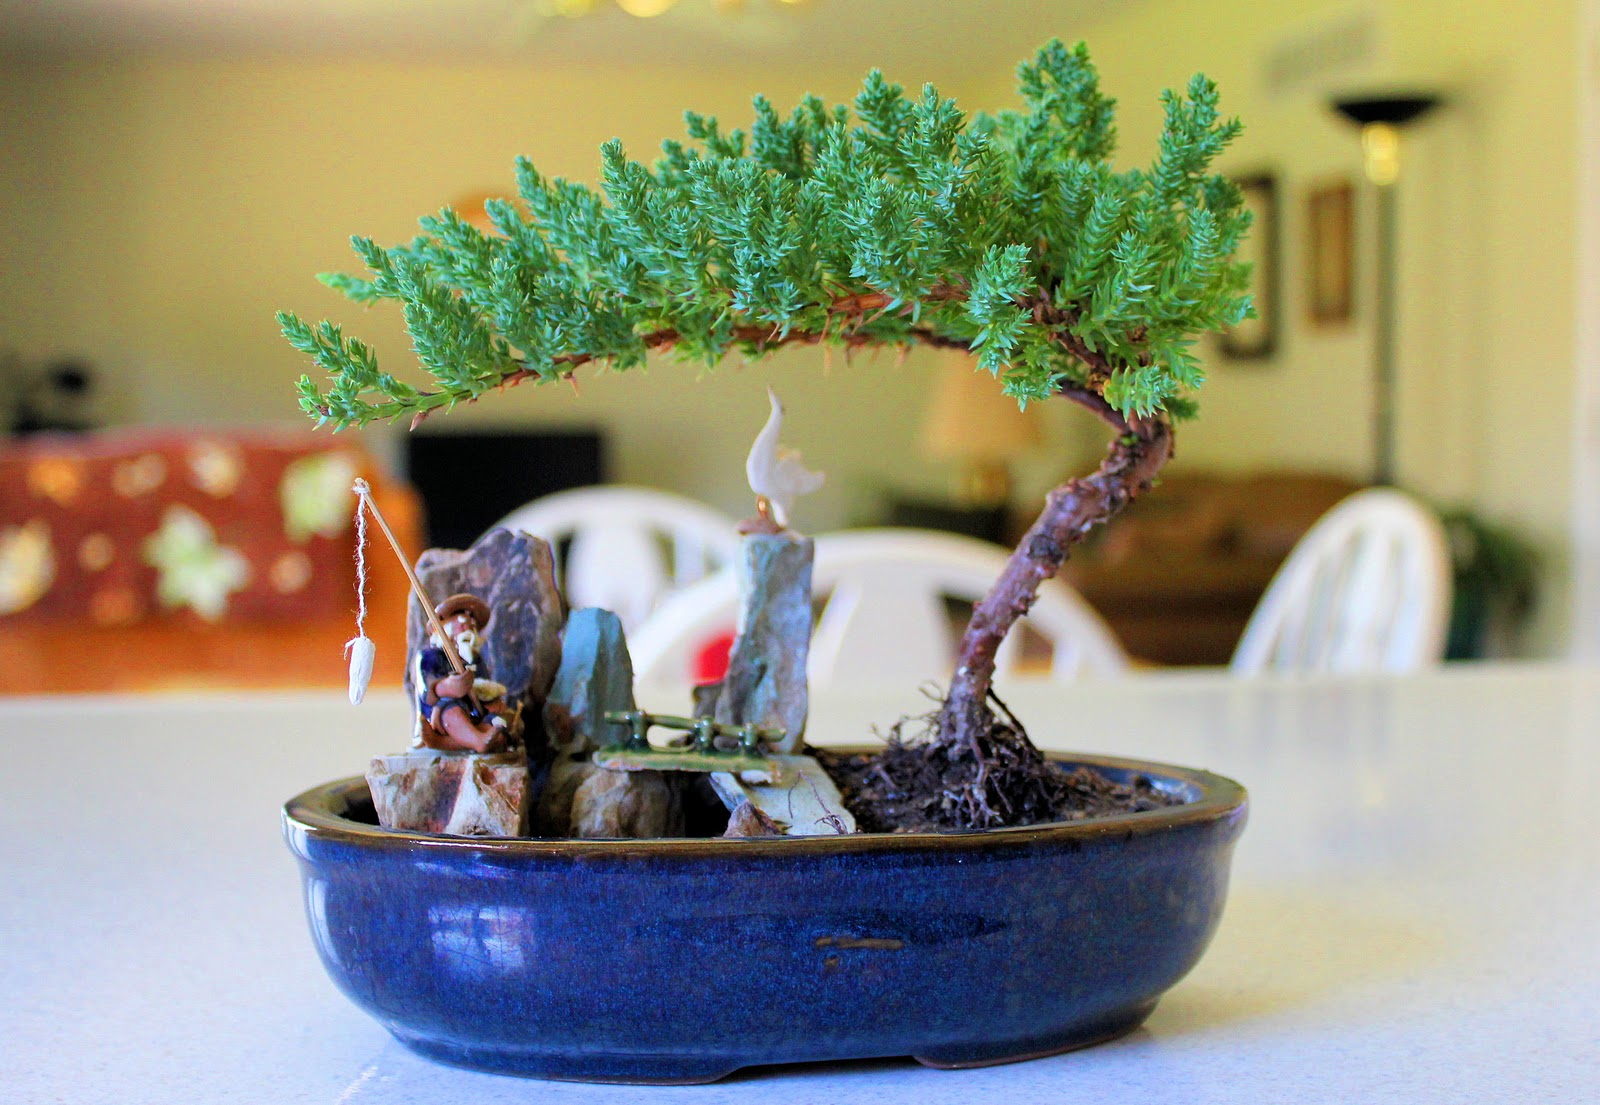 Paralyzed With JOY My Little Bonsai